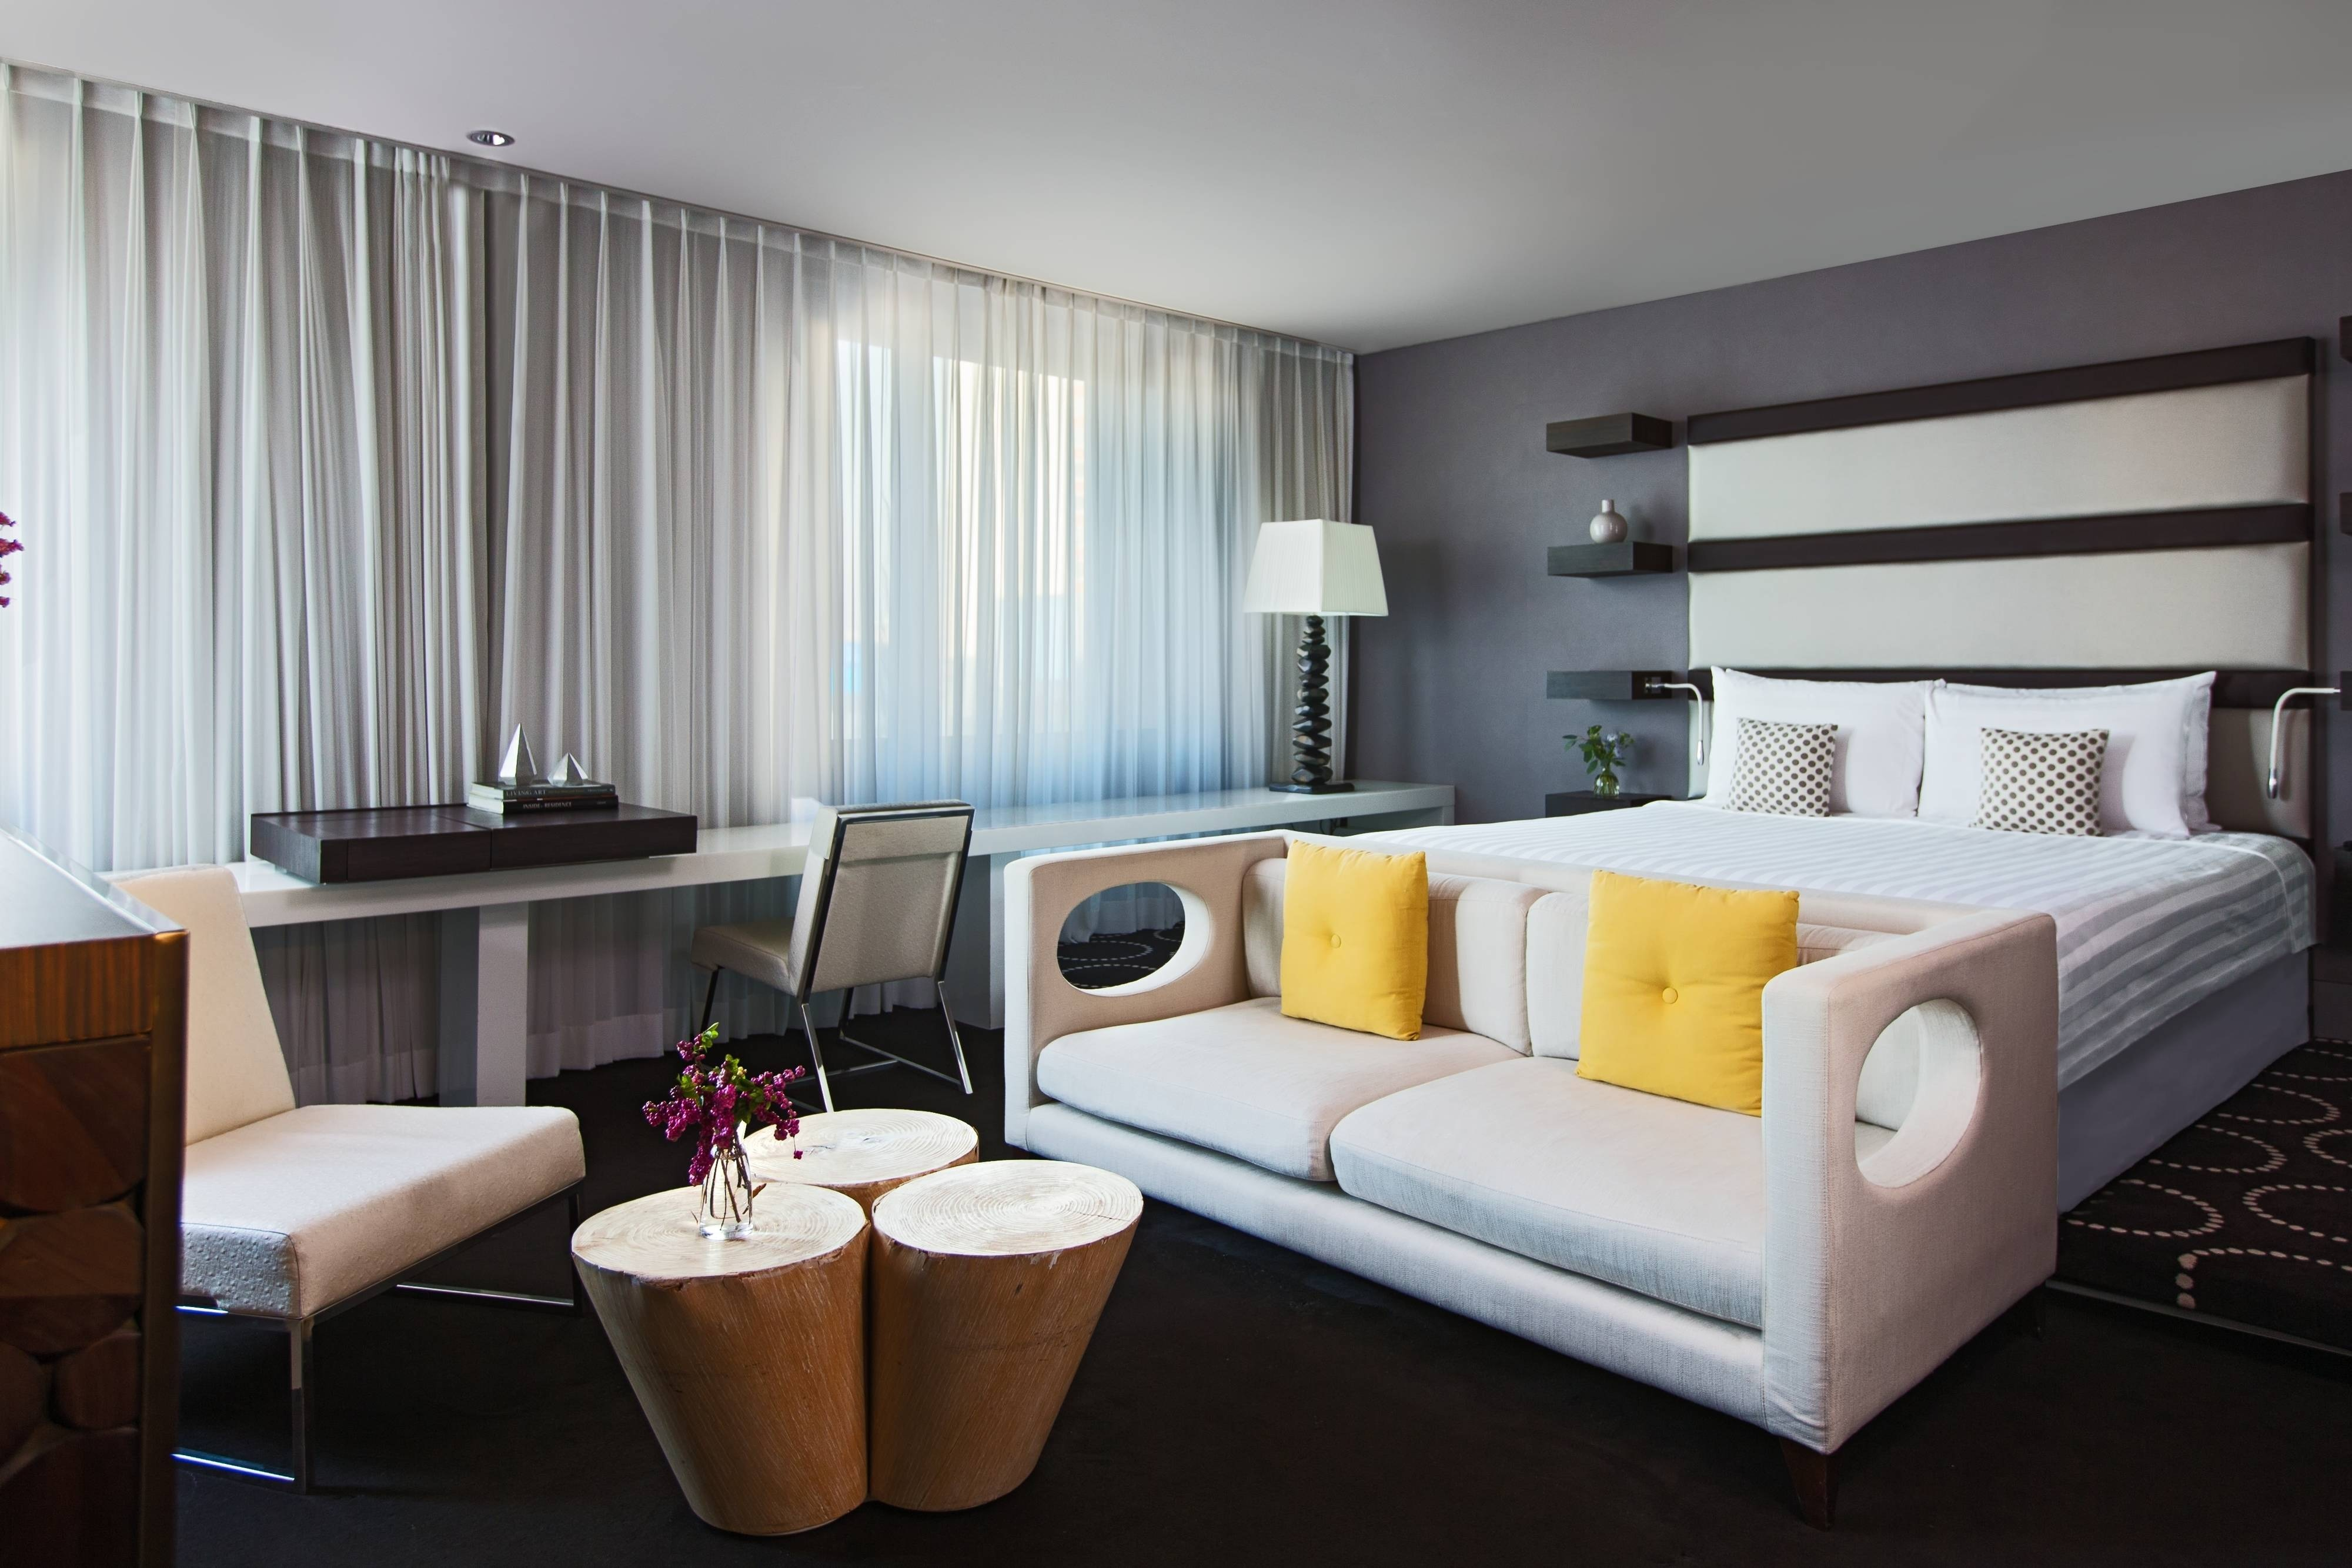 With a grand window occupying more than half of the wall, the Plaza Suite radiates sheer warmth and beauty with its alluring prism-like quality.